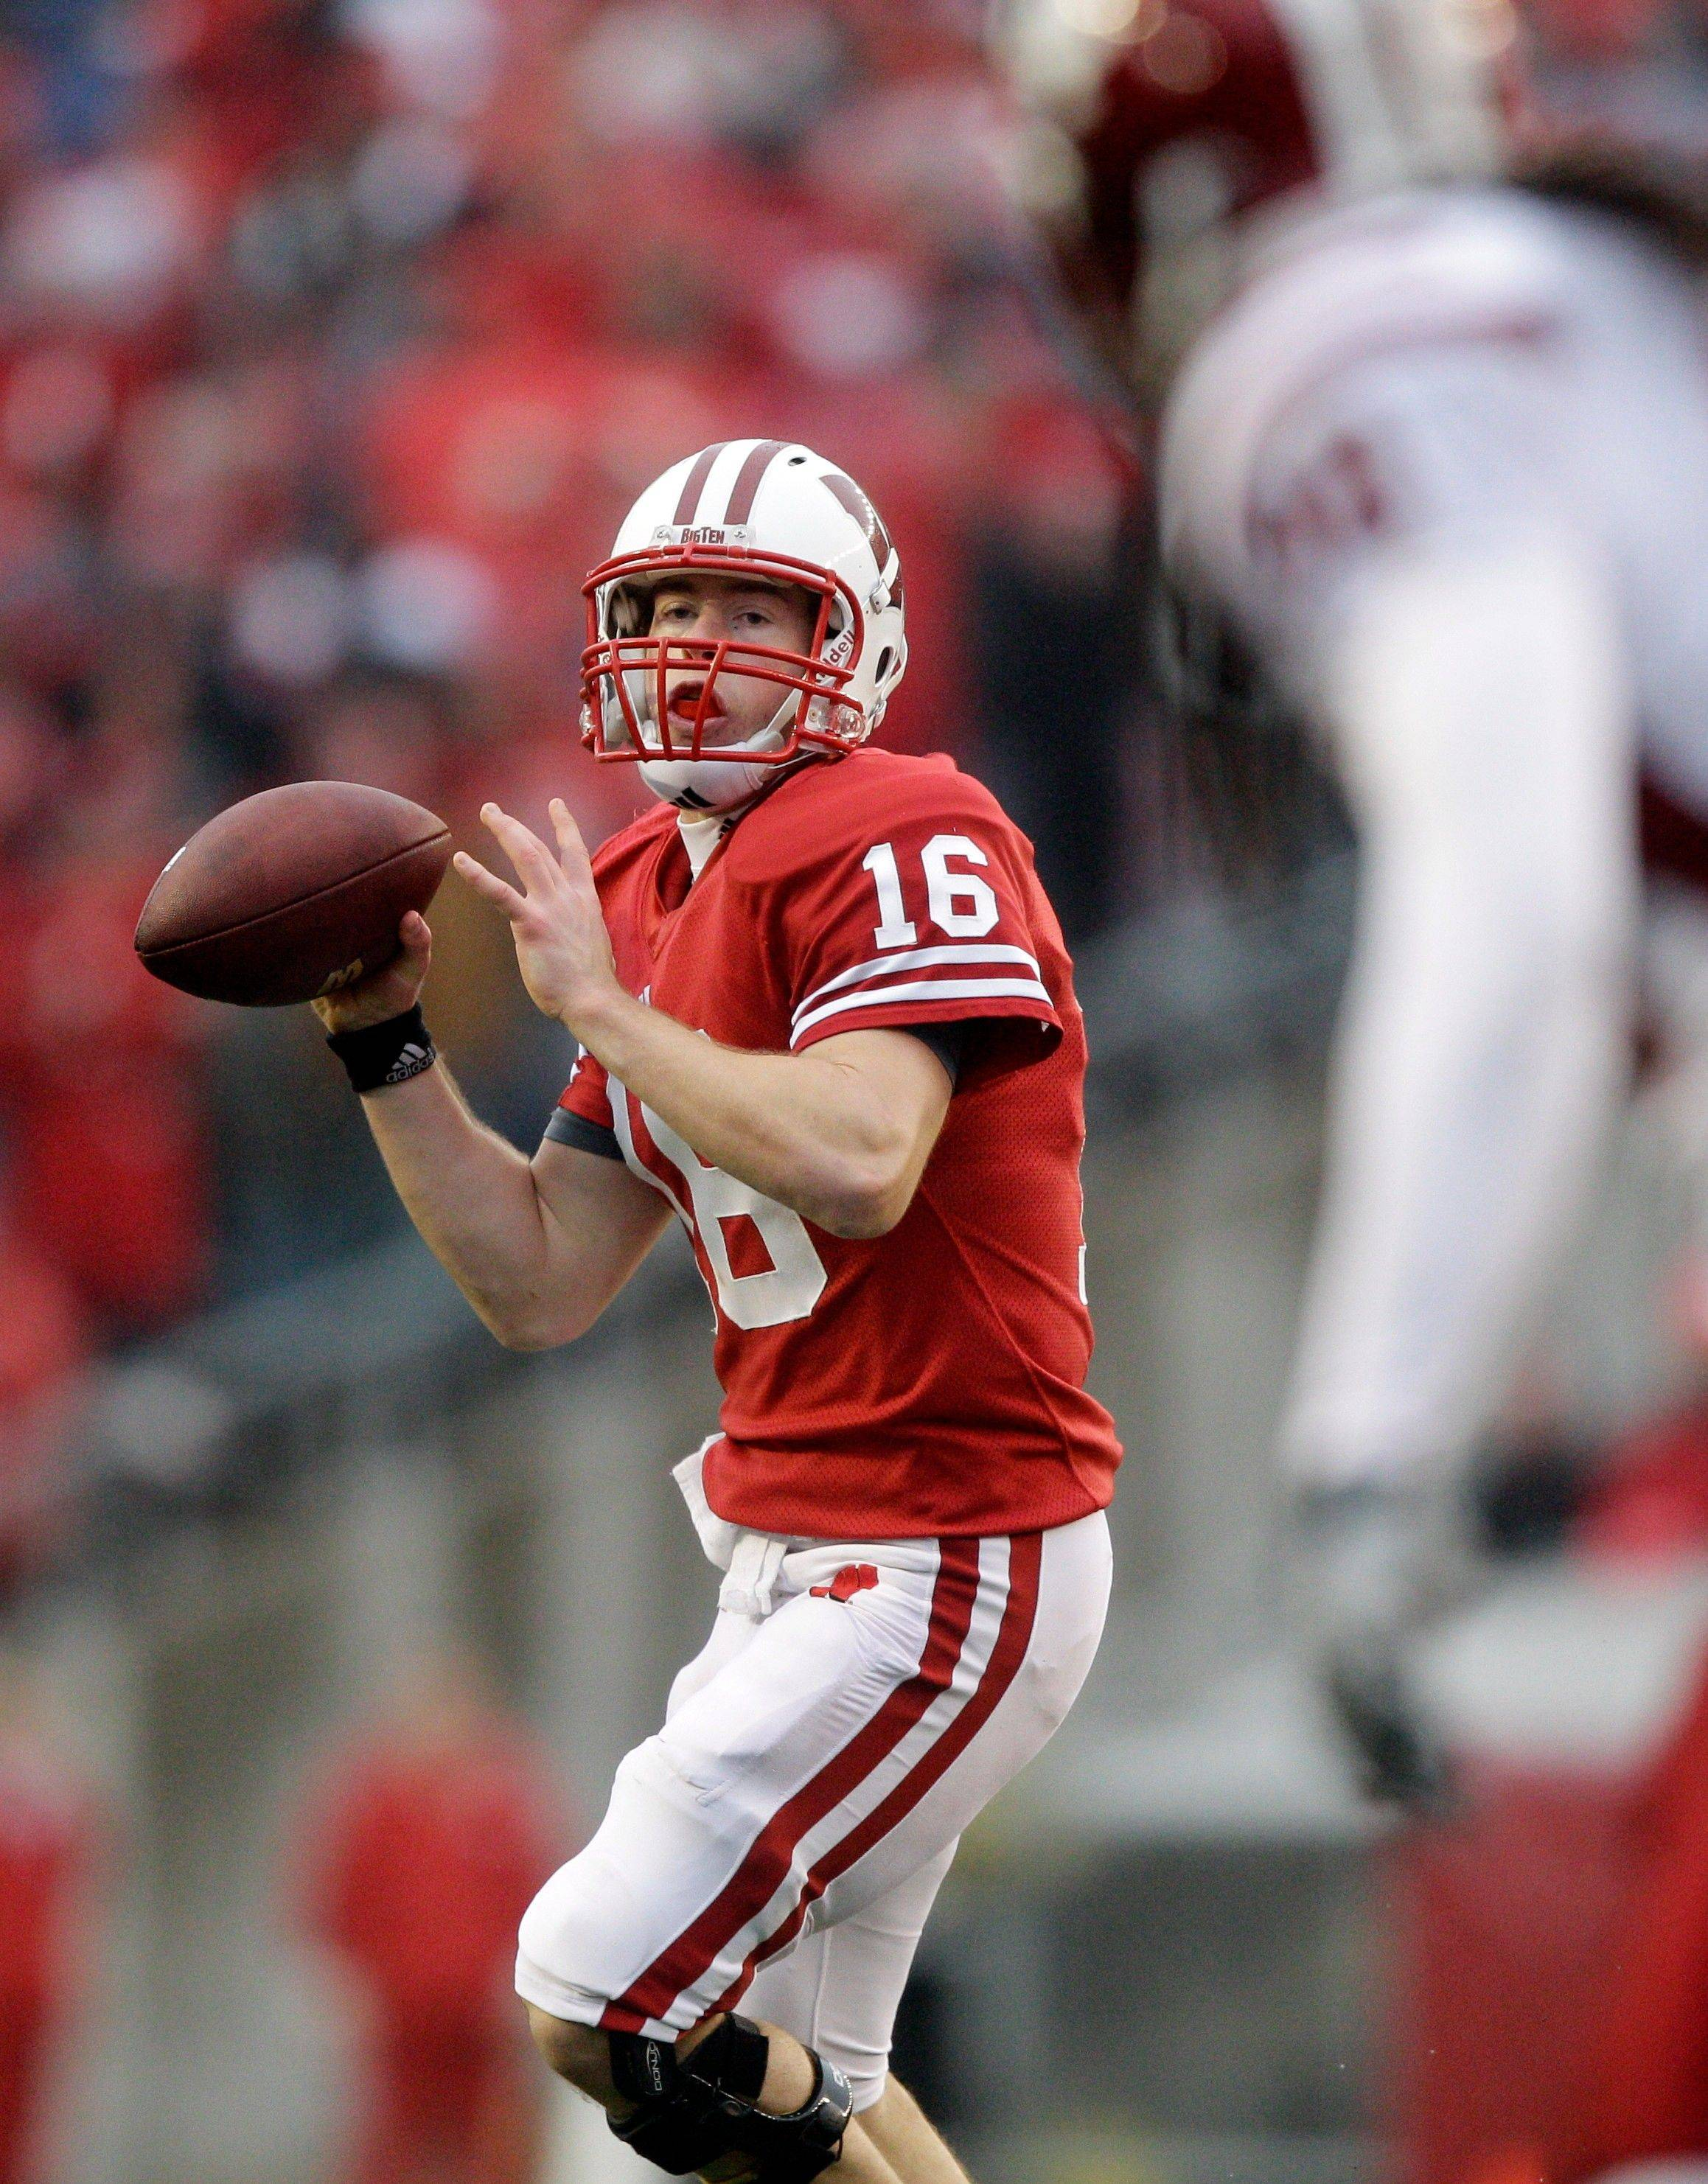 Badgers quarterback Scott Tolzien has Wisconsin in the running for its first BCS bowl bid since 1999.